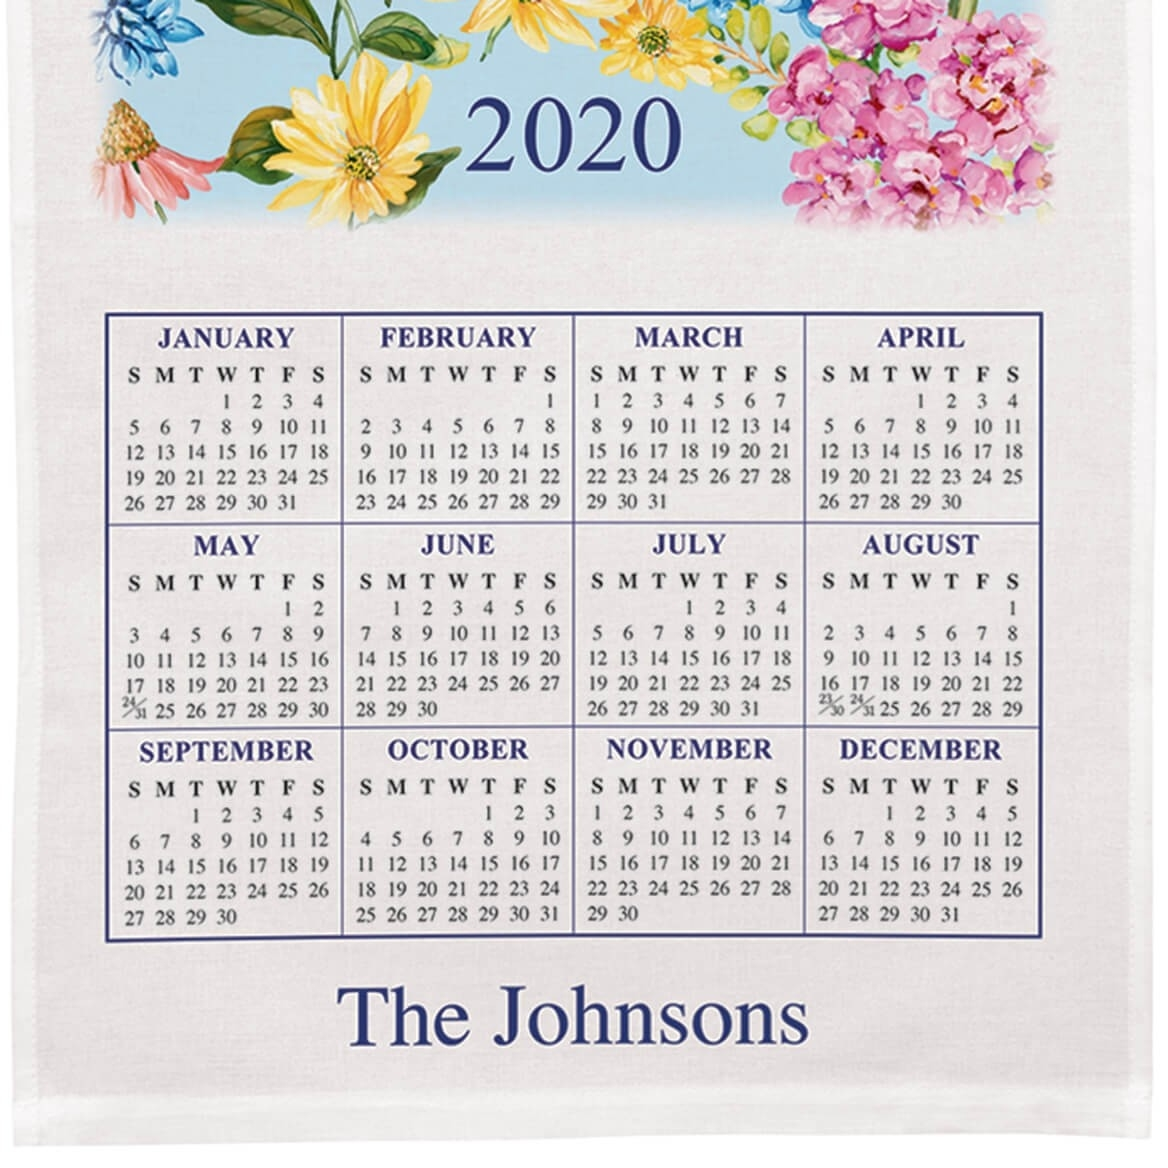 Calendars And Planners – Organizational Tools 3 Year Calendar Reference Printable 2020-2022